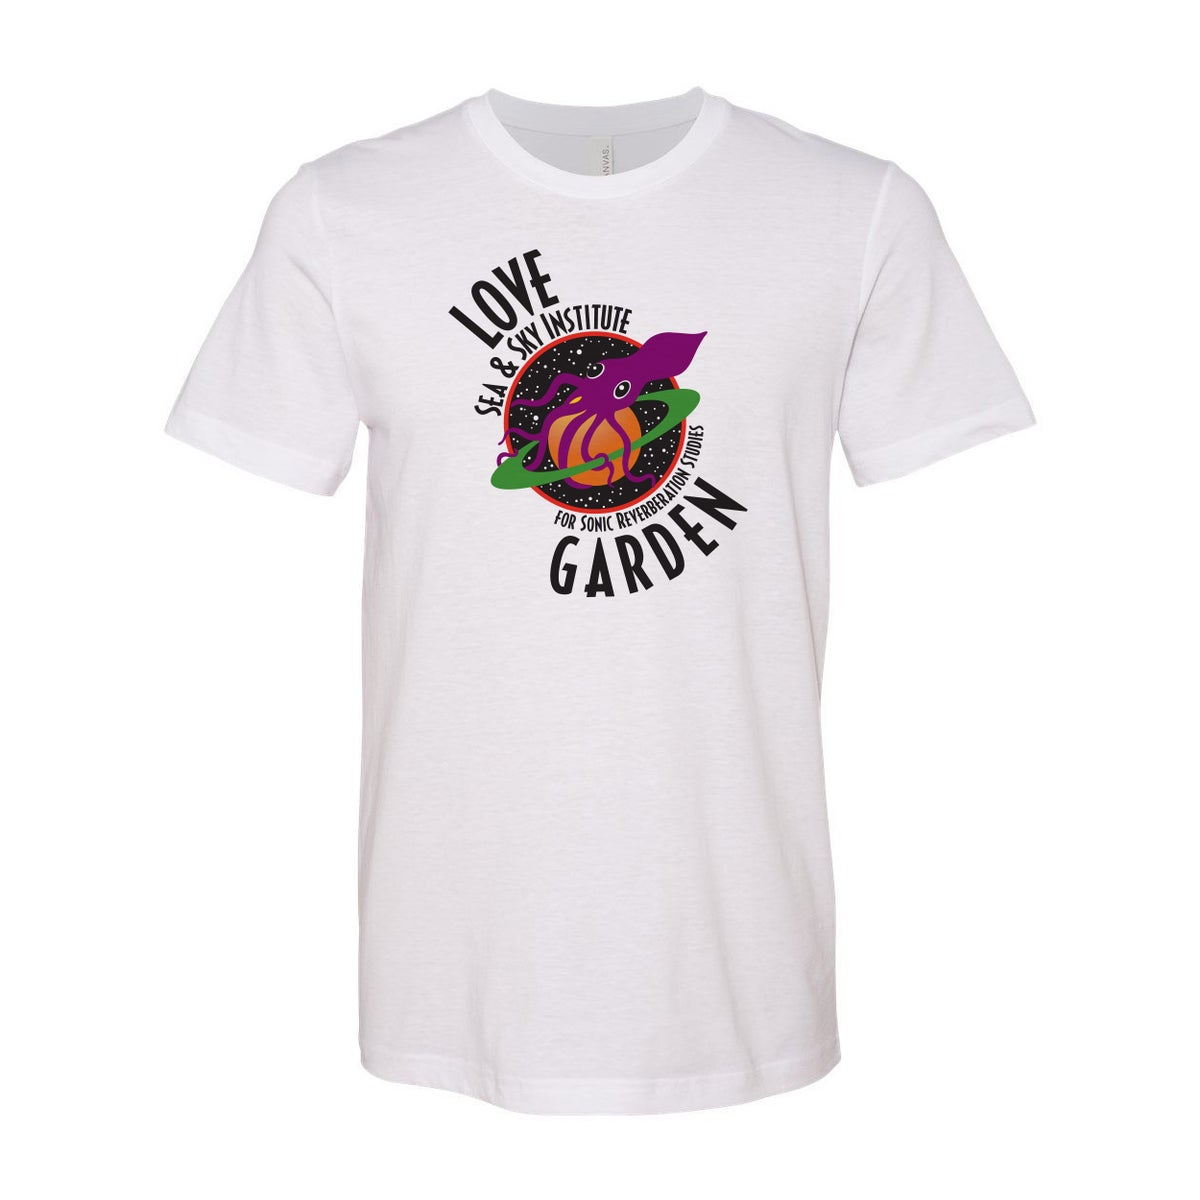 Image of Color Logo T-shirt